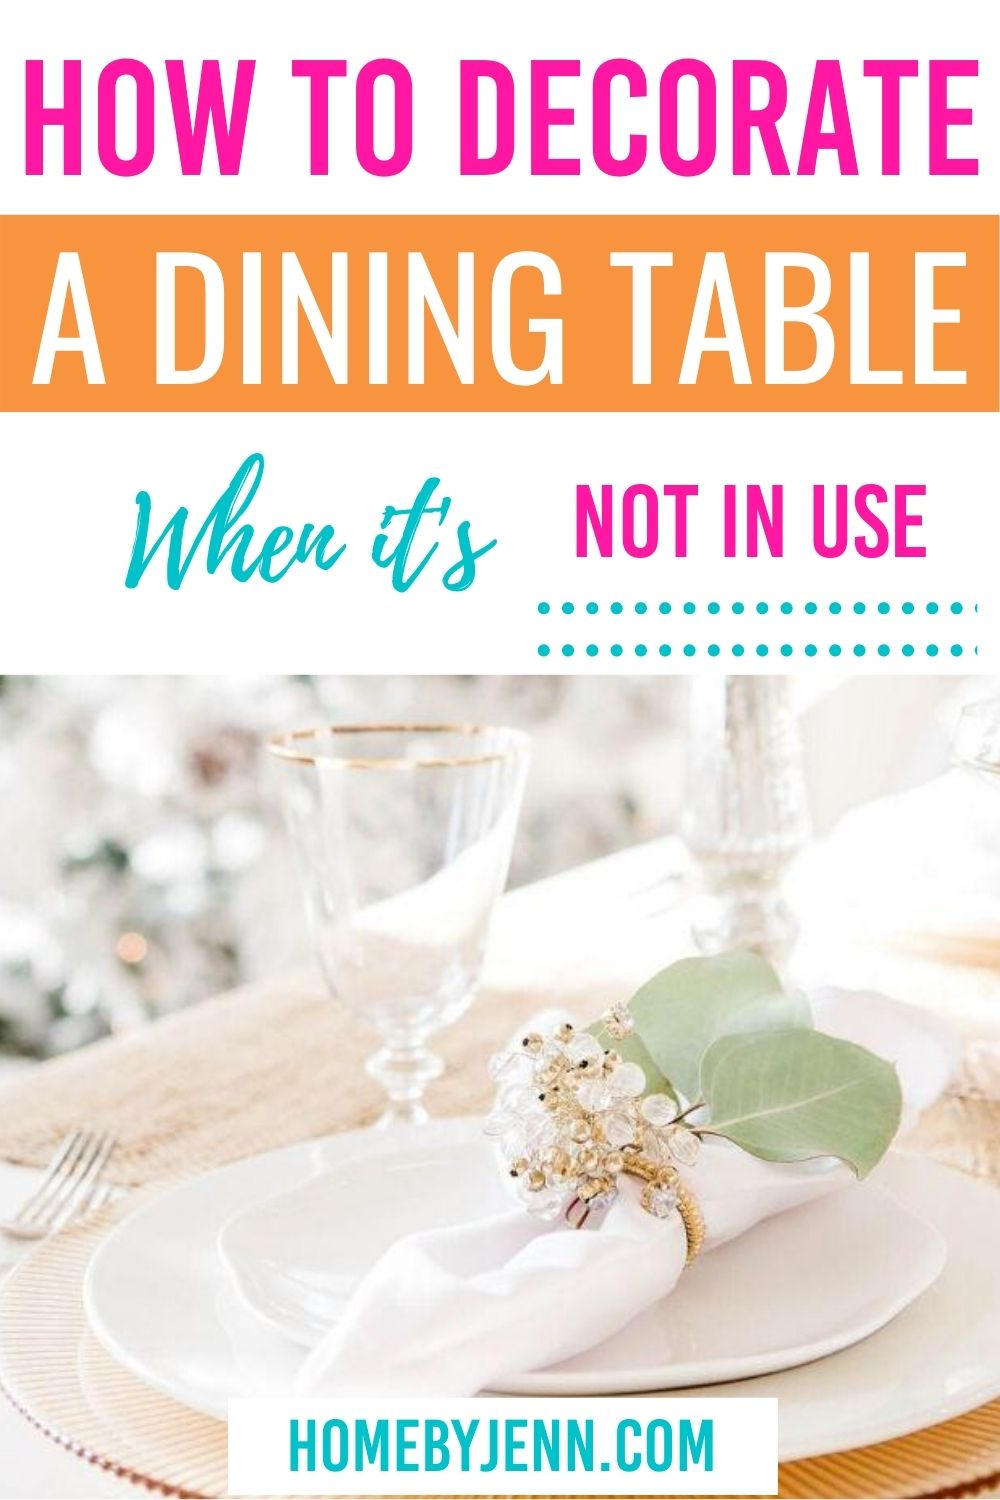 Learn different ways to transform your dining room table even when it is not in use. Learn How To Decorate Dining Table When Not In Use #table #decorate #diy #decoratewhennotused #holiday #everyday #fall via @homebyjenn